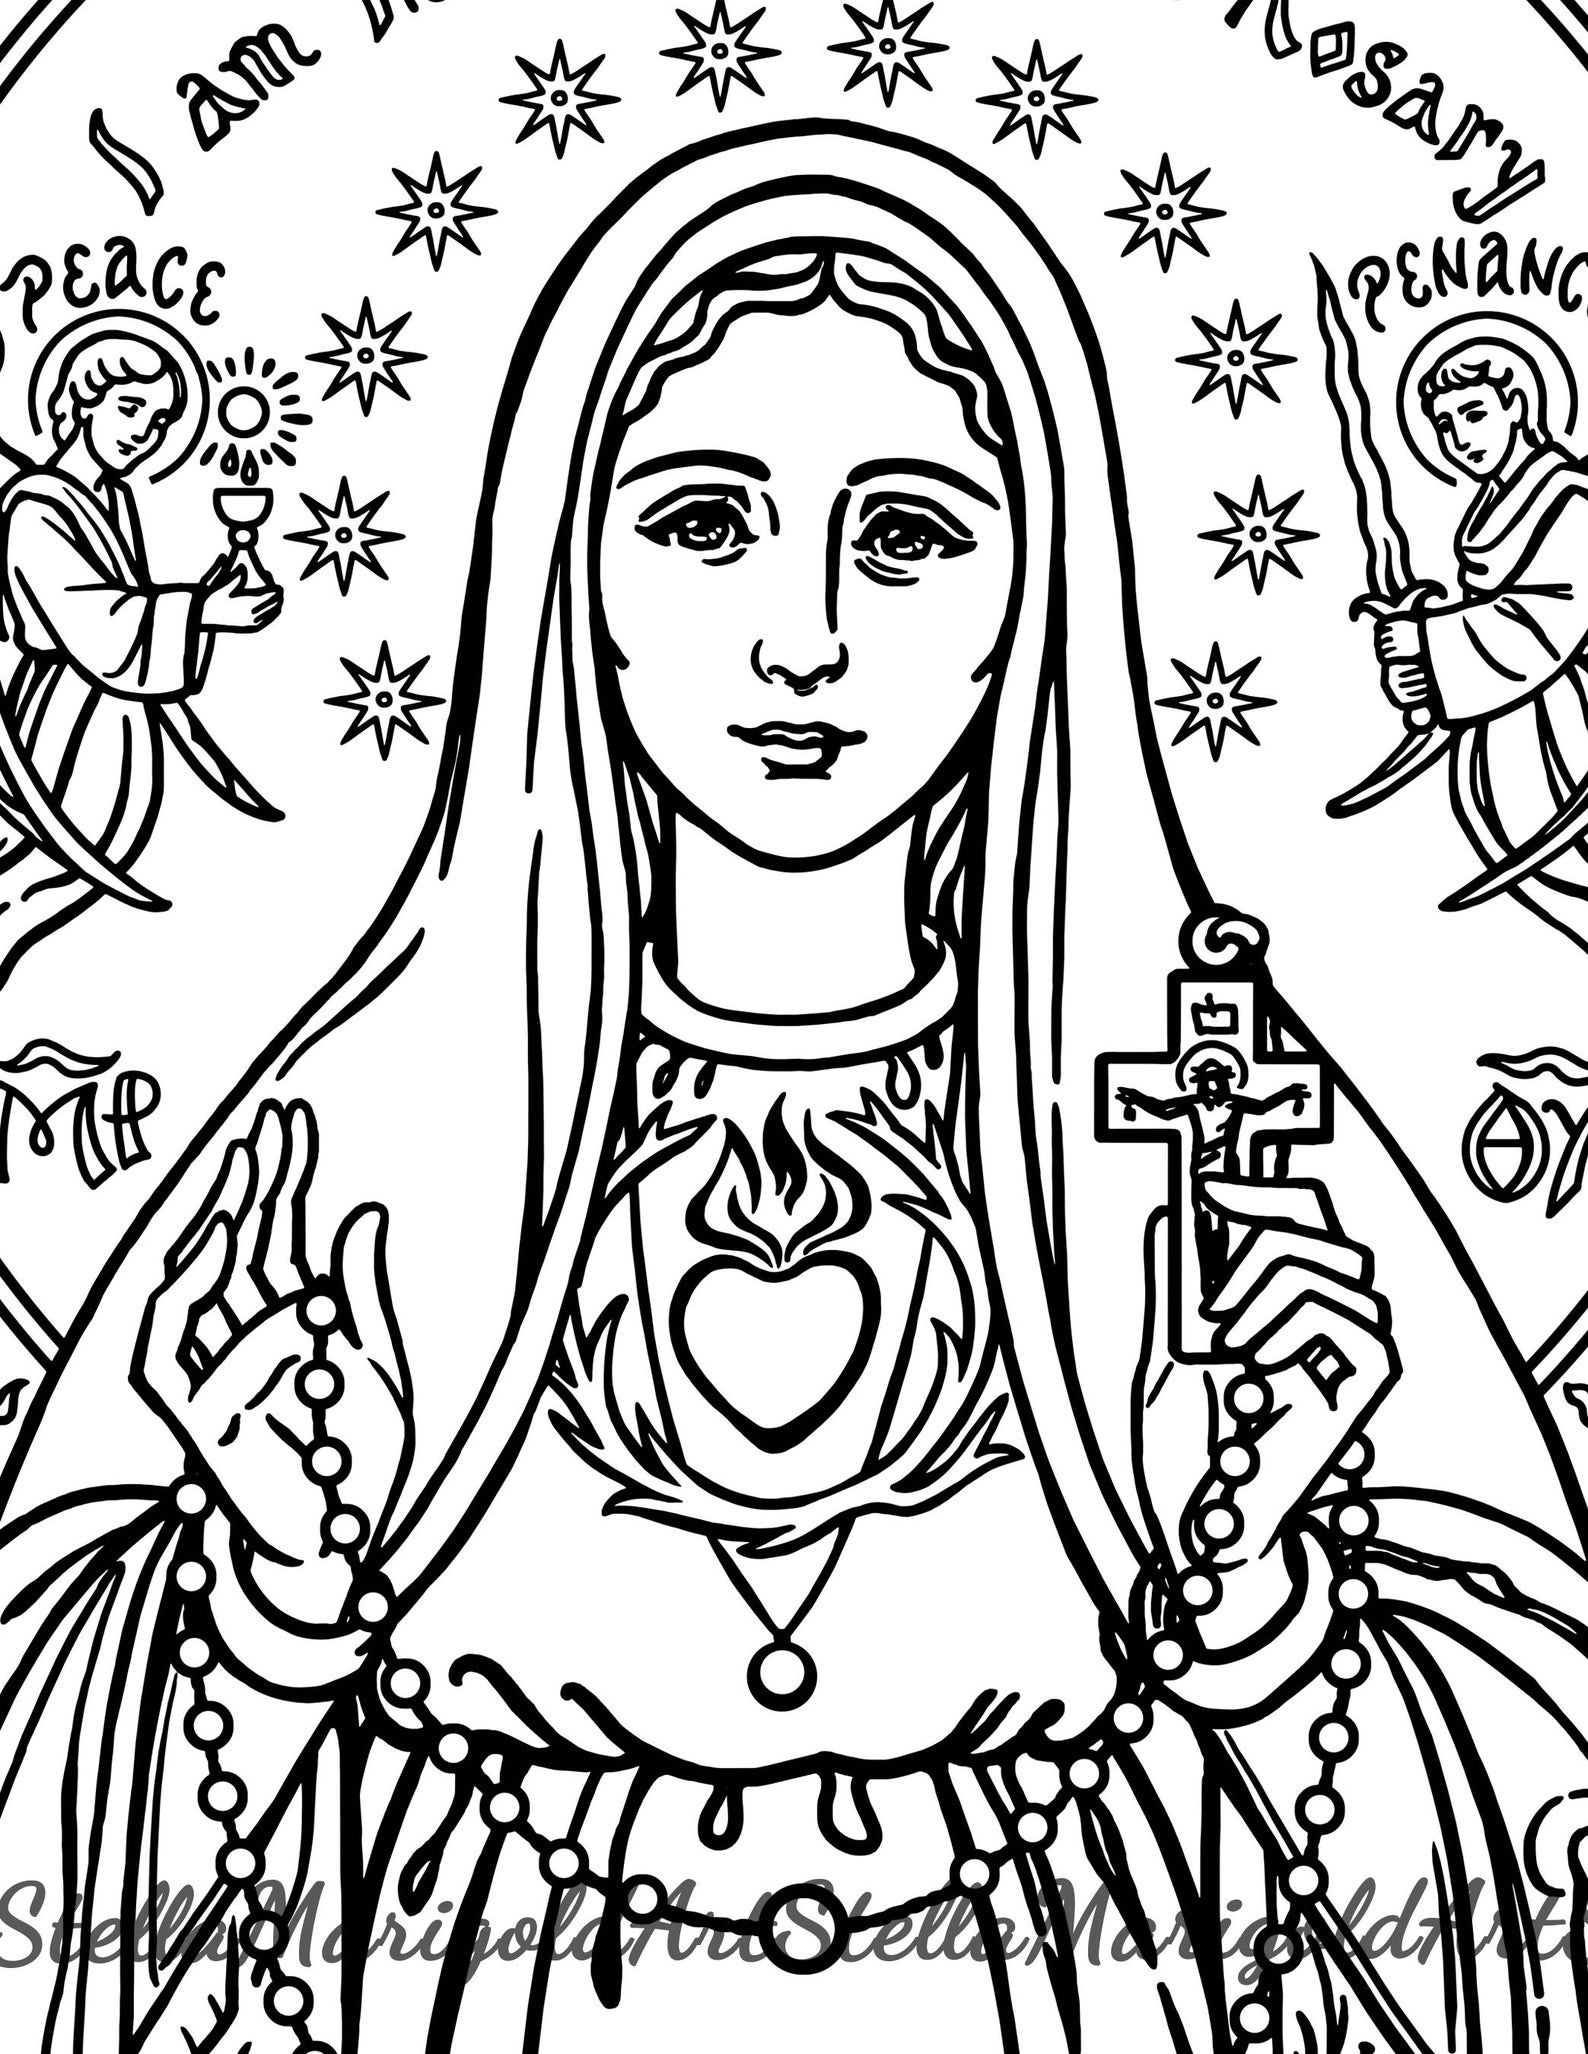 Our Lady Of Fatima Coloring Page Etsy Coloring Pages Catholic Coloring Lady Of Fatima